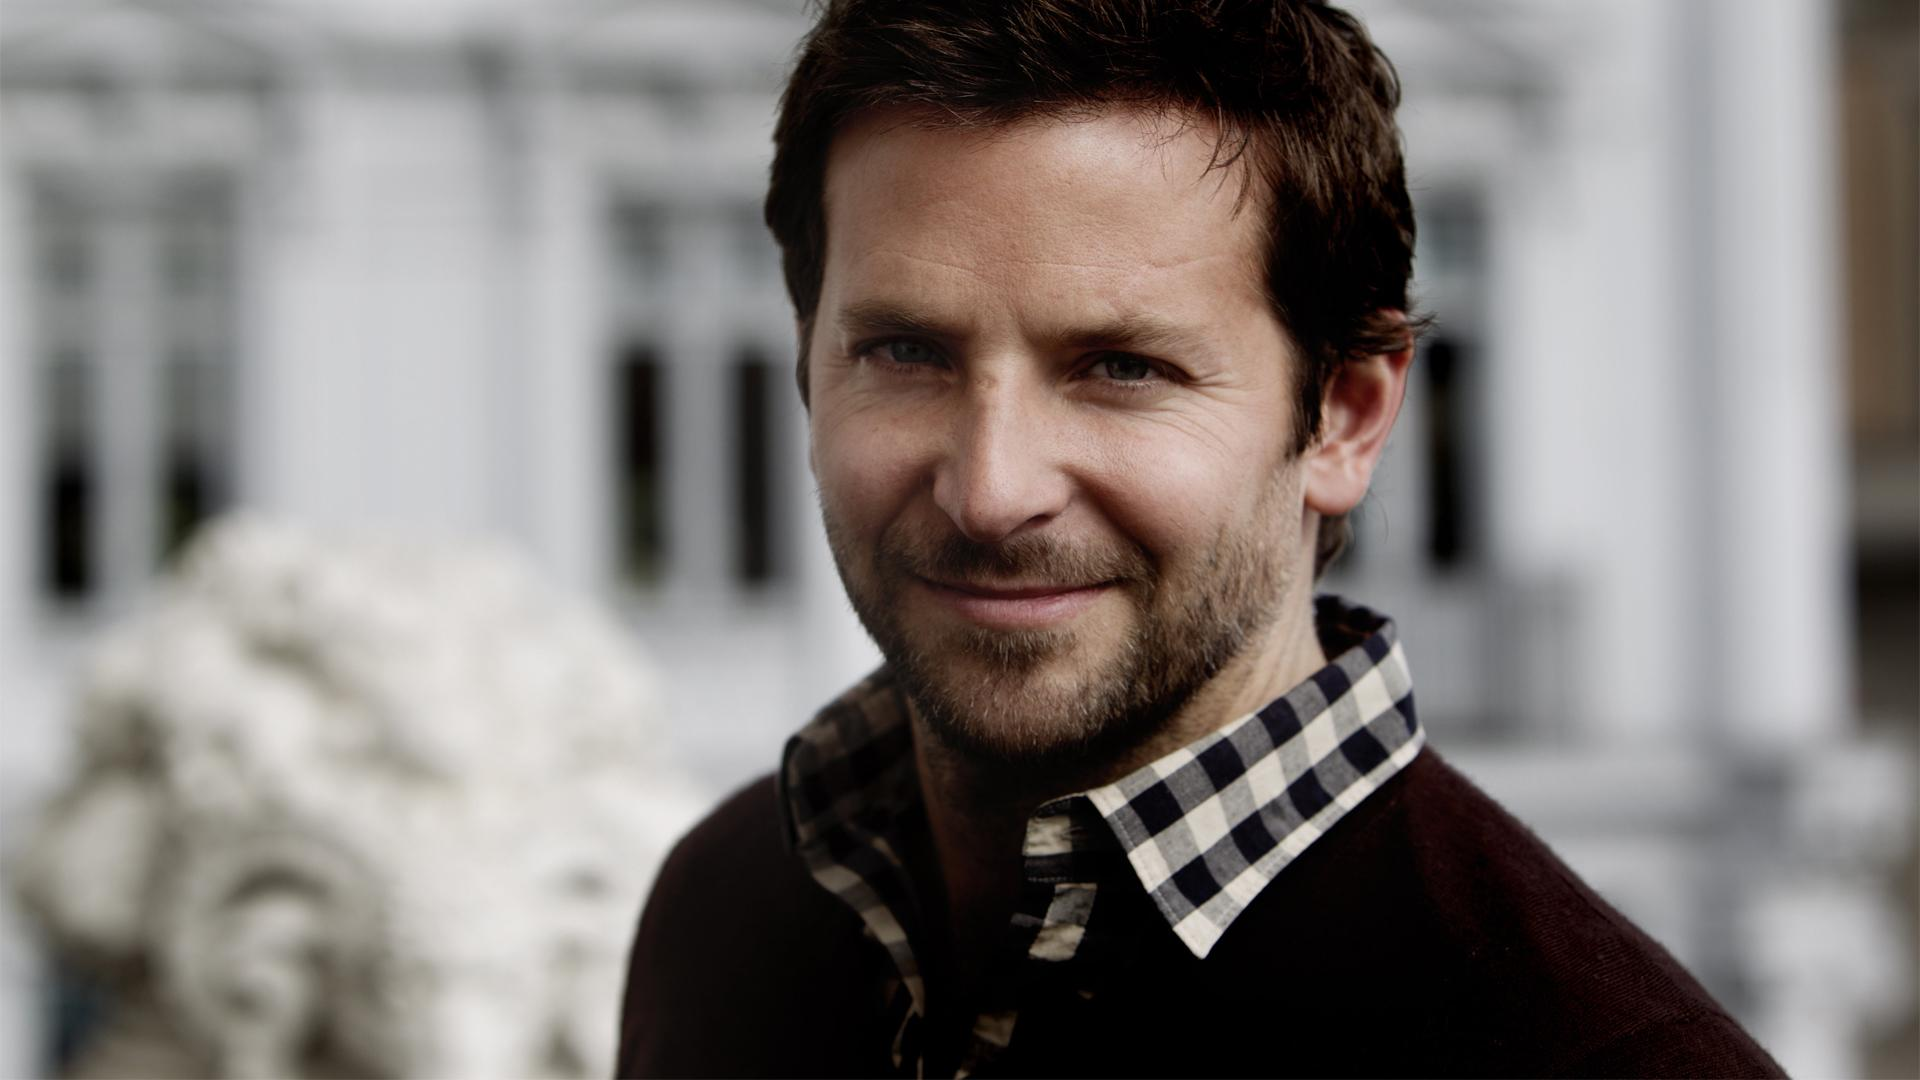 Bradley Cooper Wallpapers and Backgrounds Image